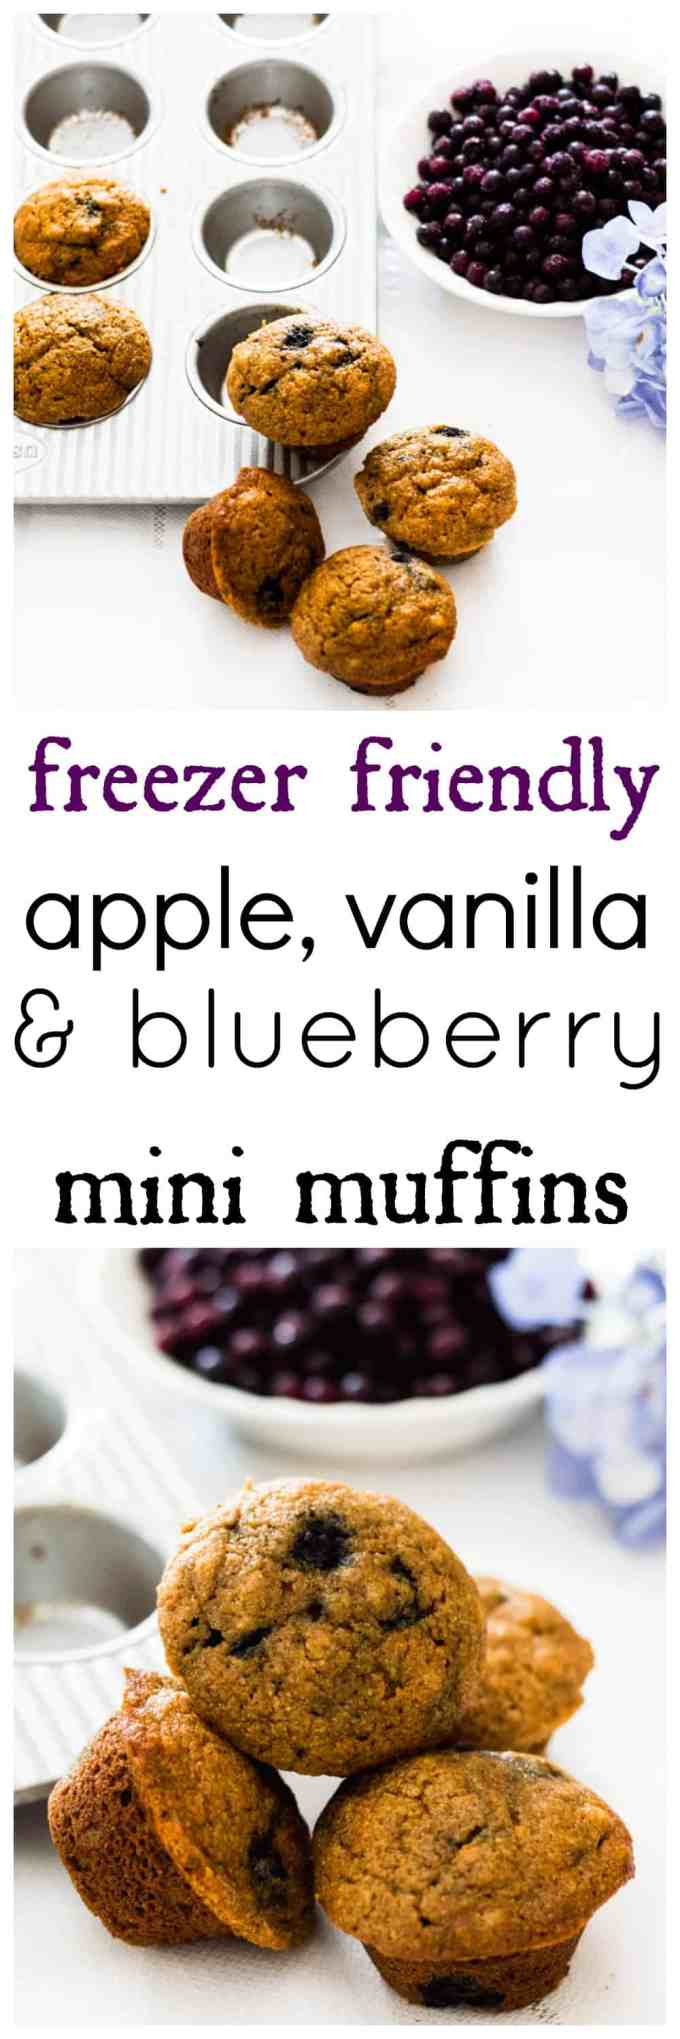 Apple vanilla and blueberry mini muffins are the perfect freezer friendly grab-n-go snacks for busy little hands. Naturally sweetened